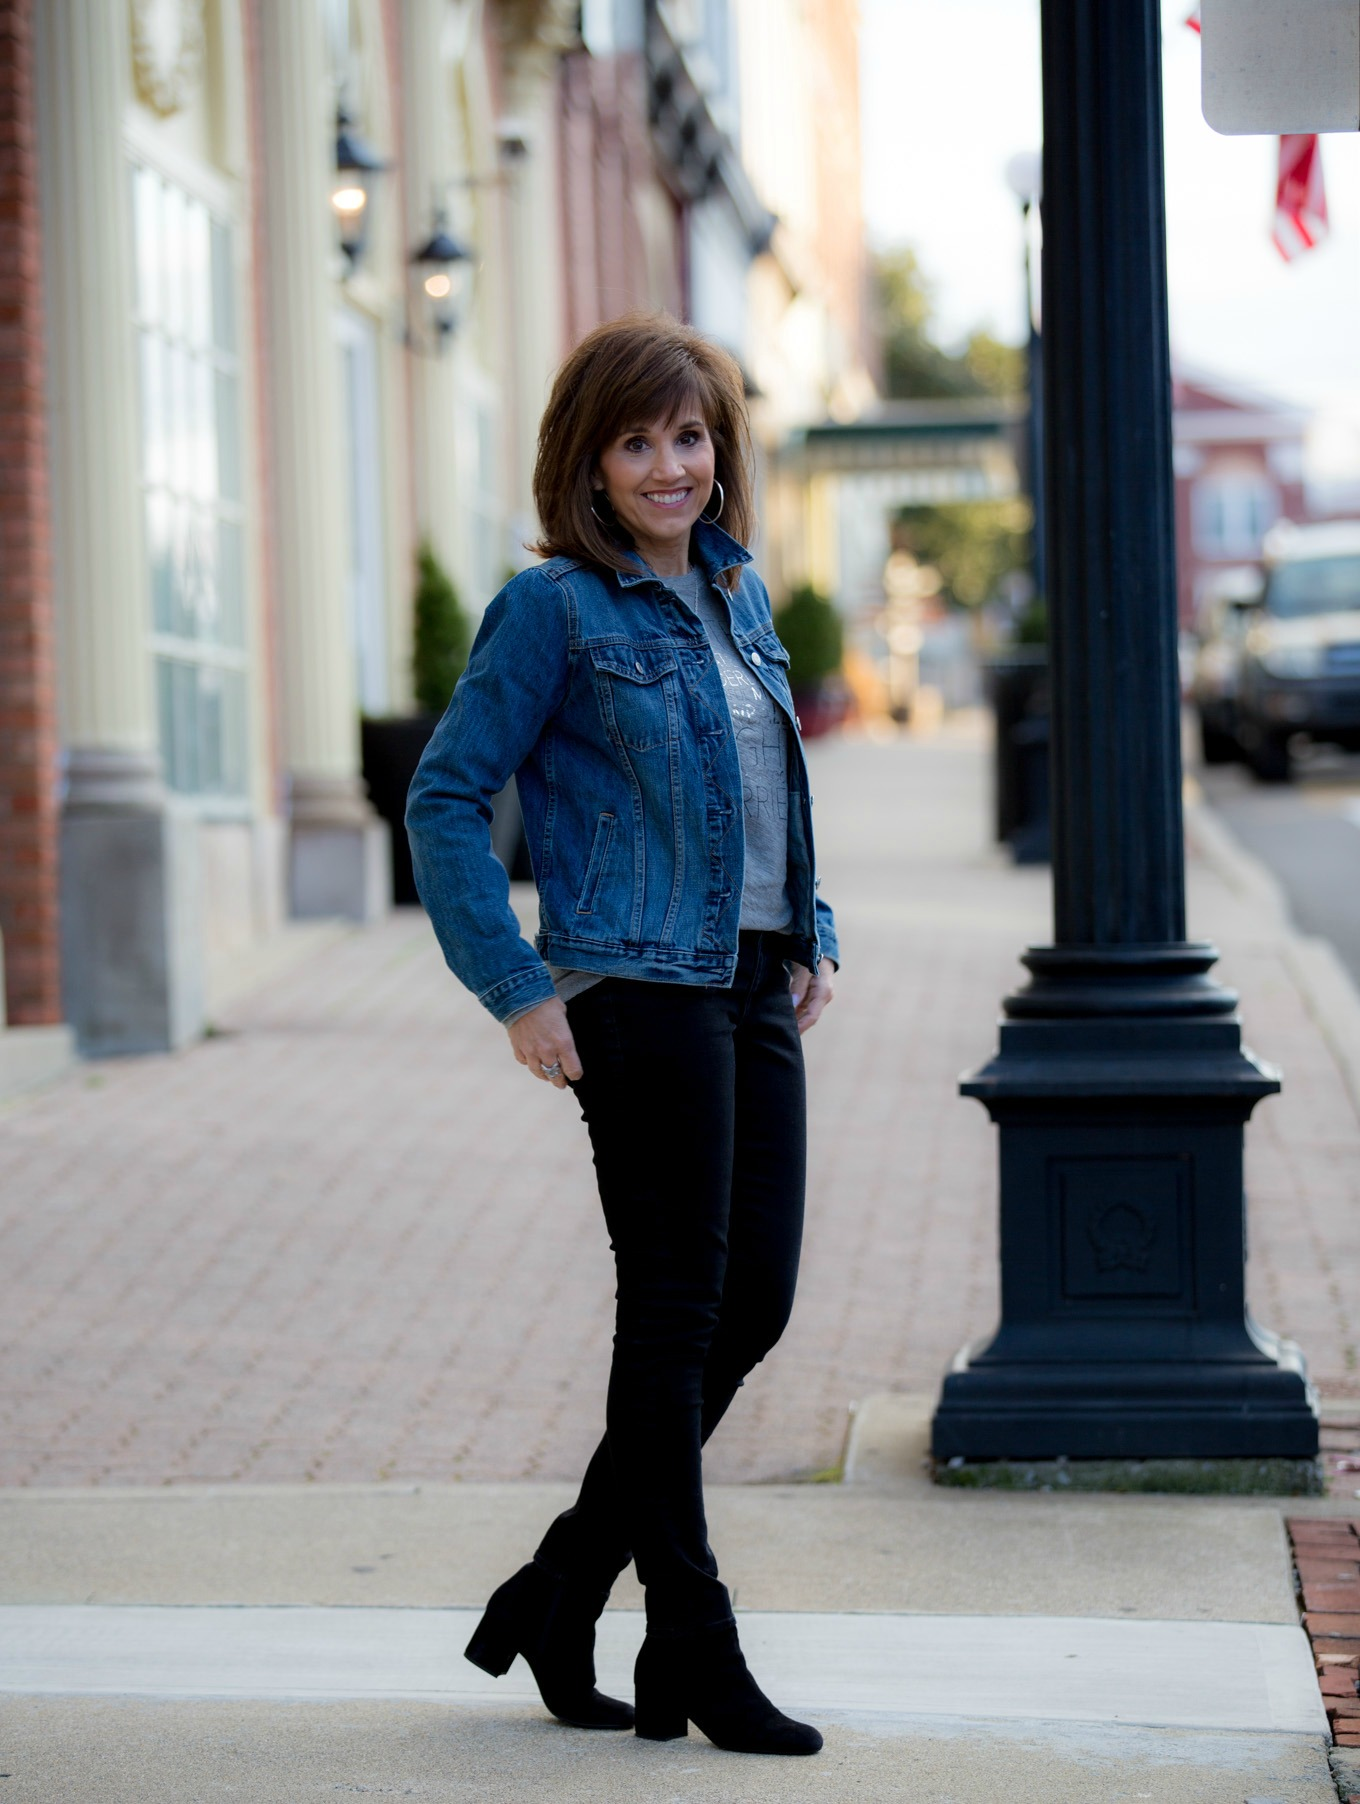 Fashion blogger, Cyndi Spivey, styling a graphic tee from Gap.